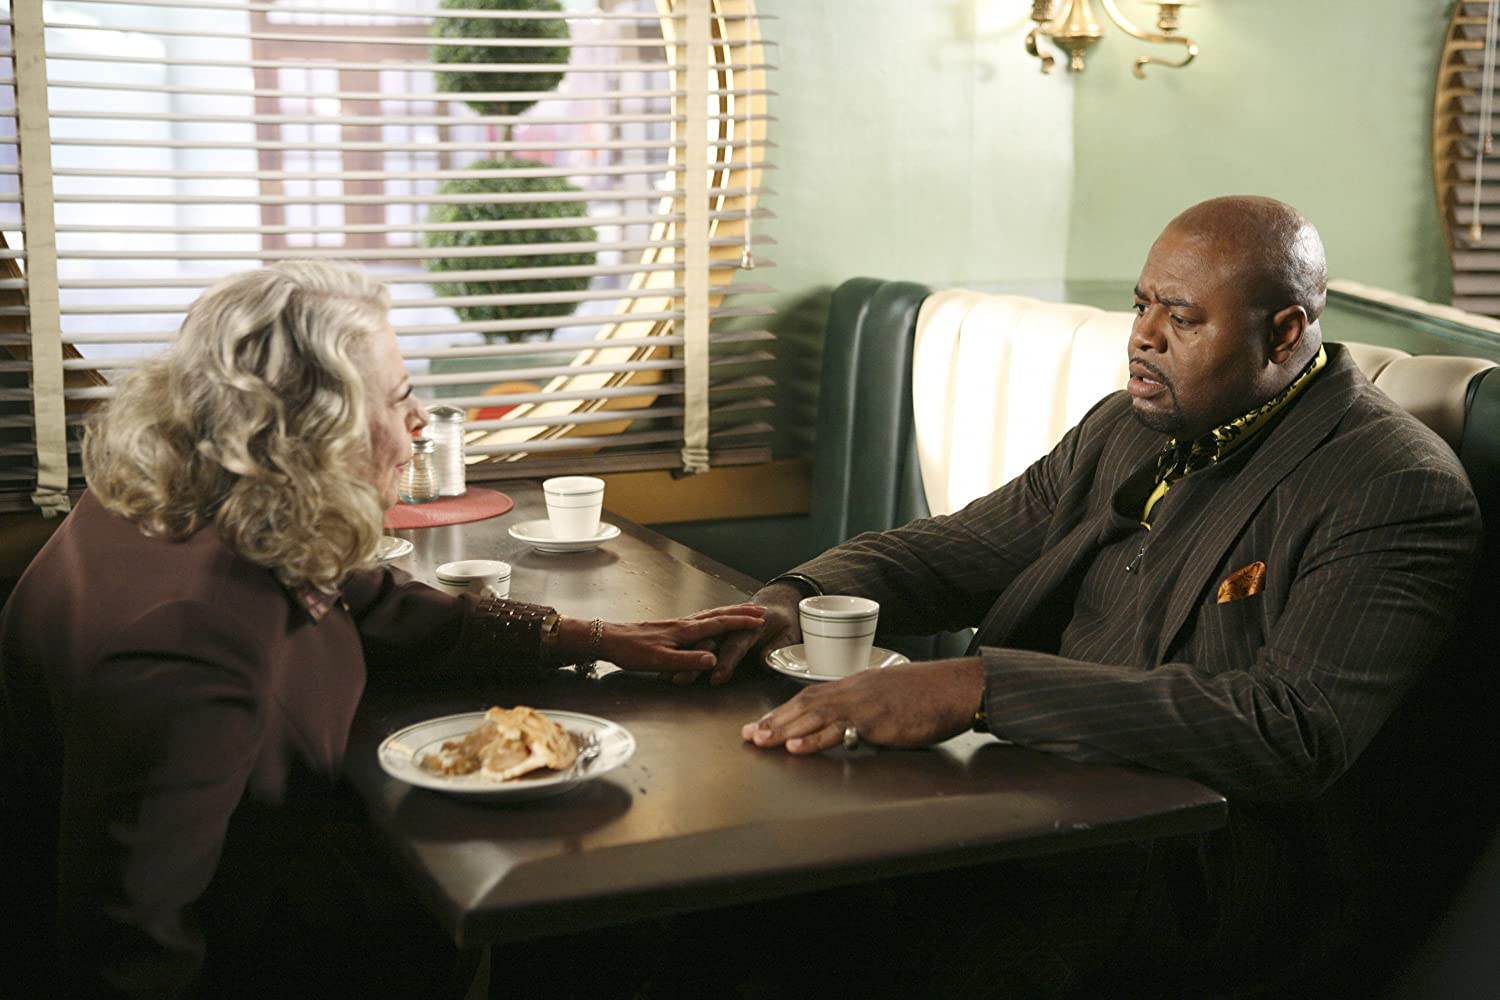 Chi McBride and Debra Mooney in Pushing Daisies (2007)